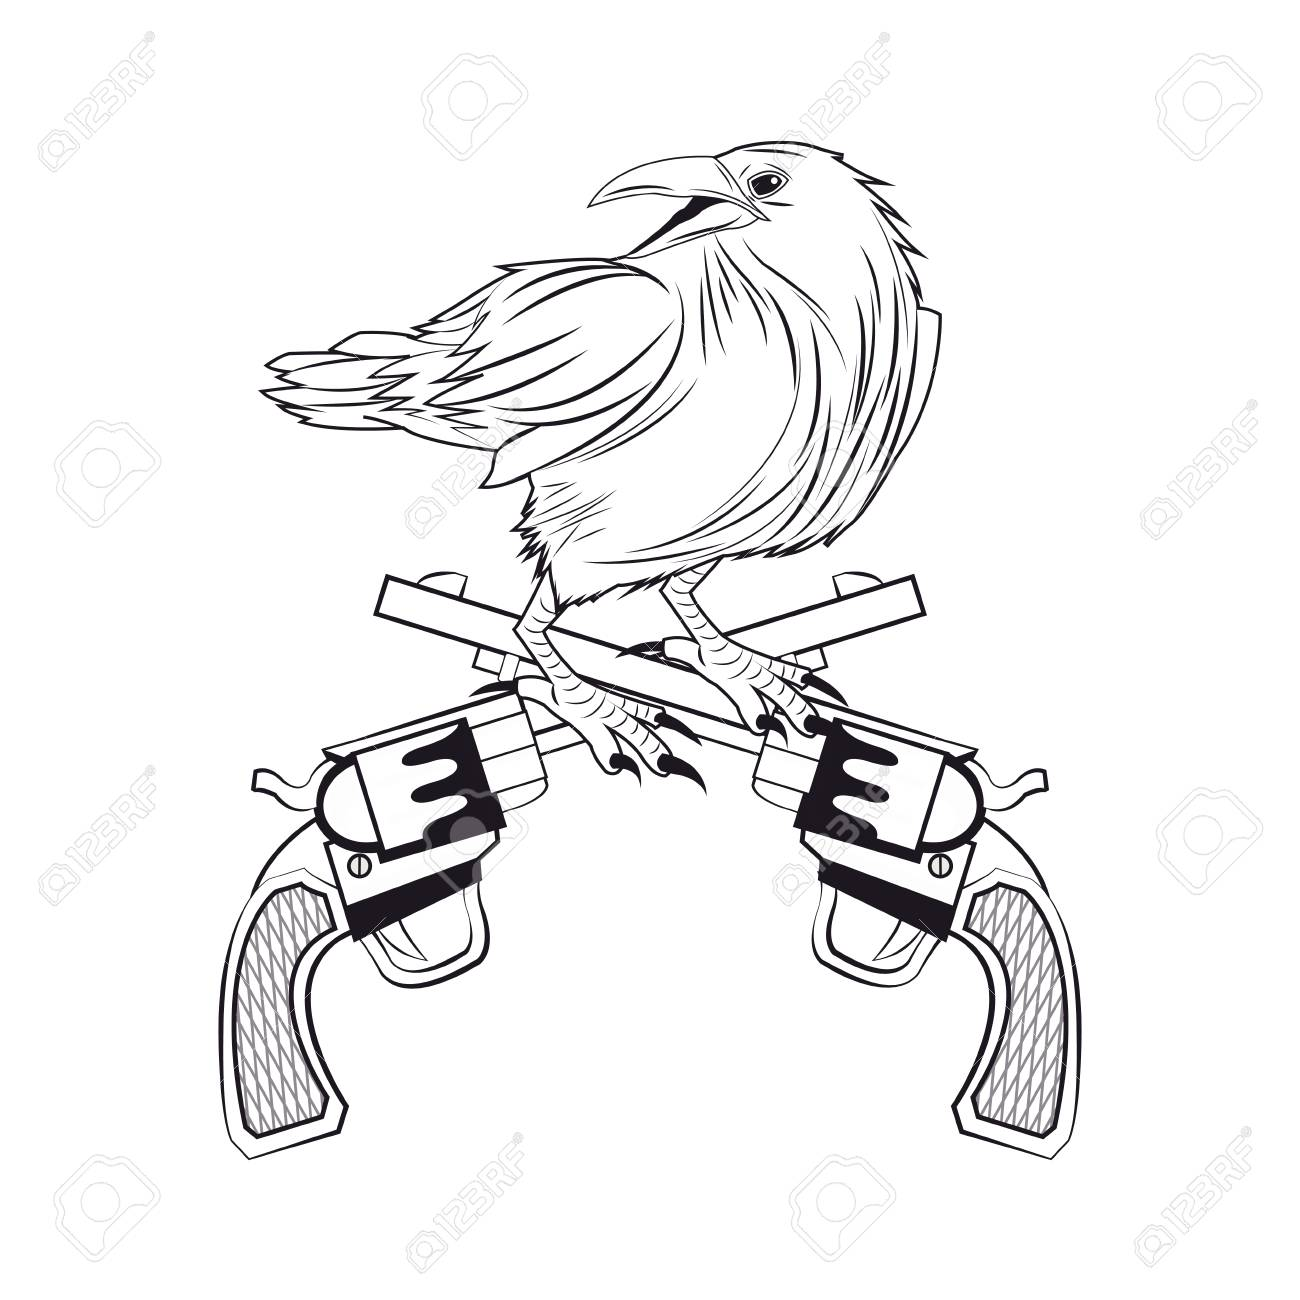 Eagle Tattoo Drawing At Getdrawingscom Free For Personal